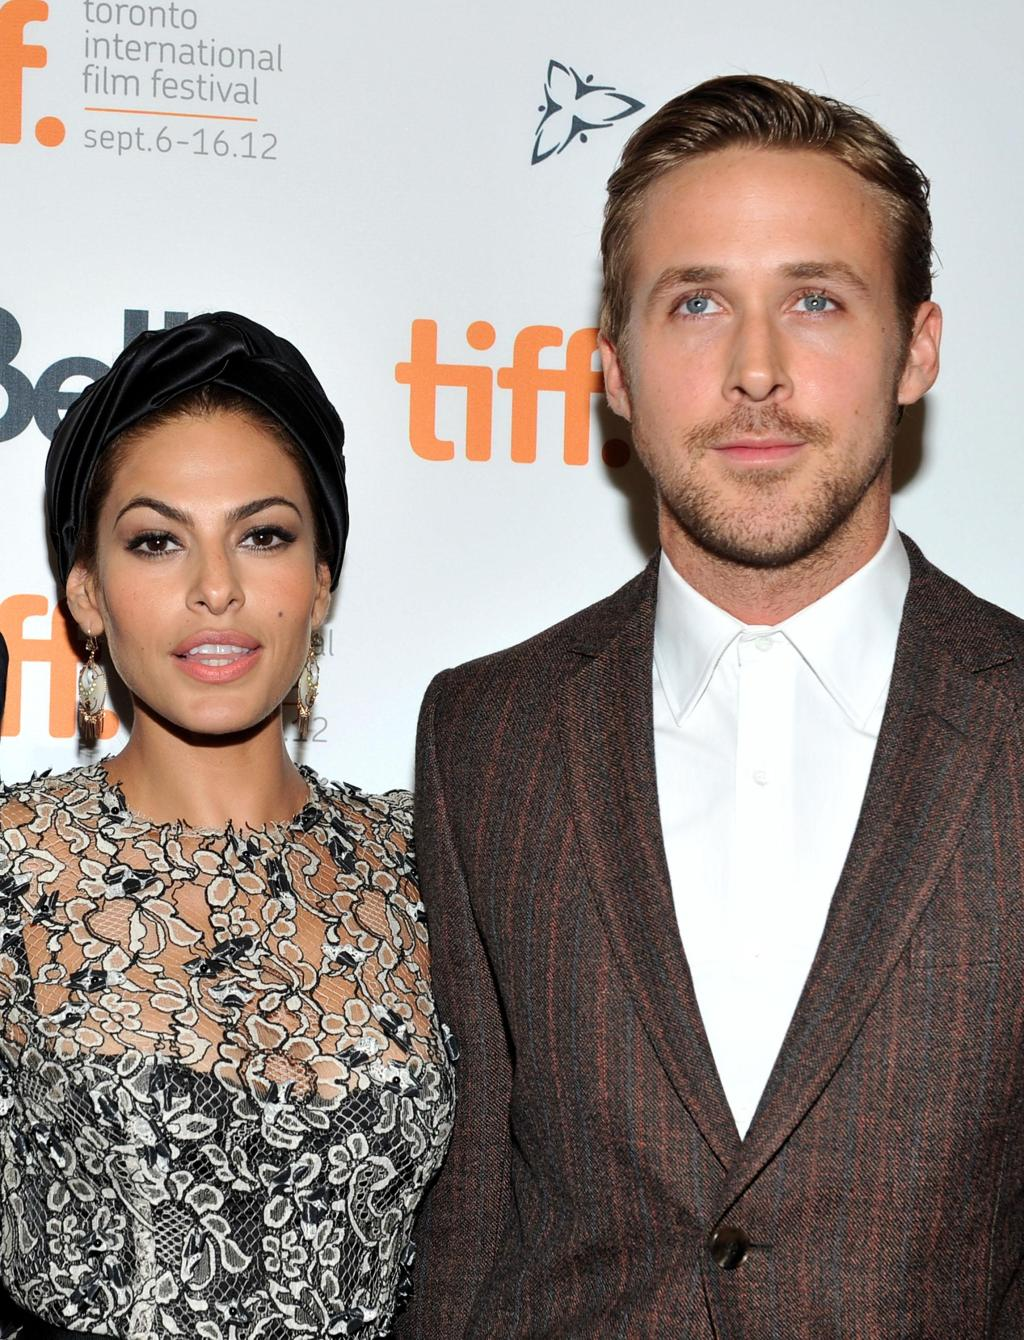 'The Place Beyond The Pines' Premiere - 2012 Toronto International Film Festival